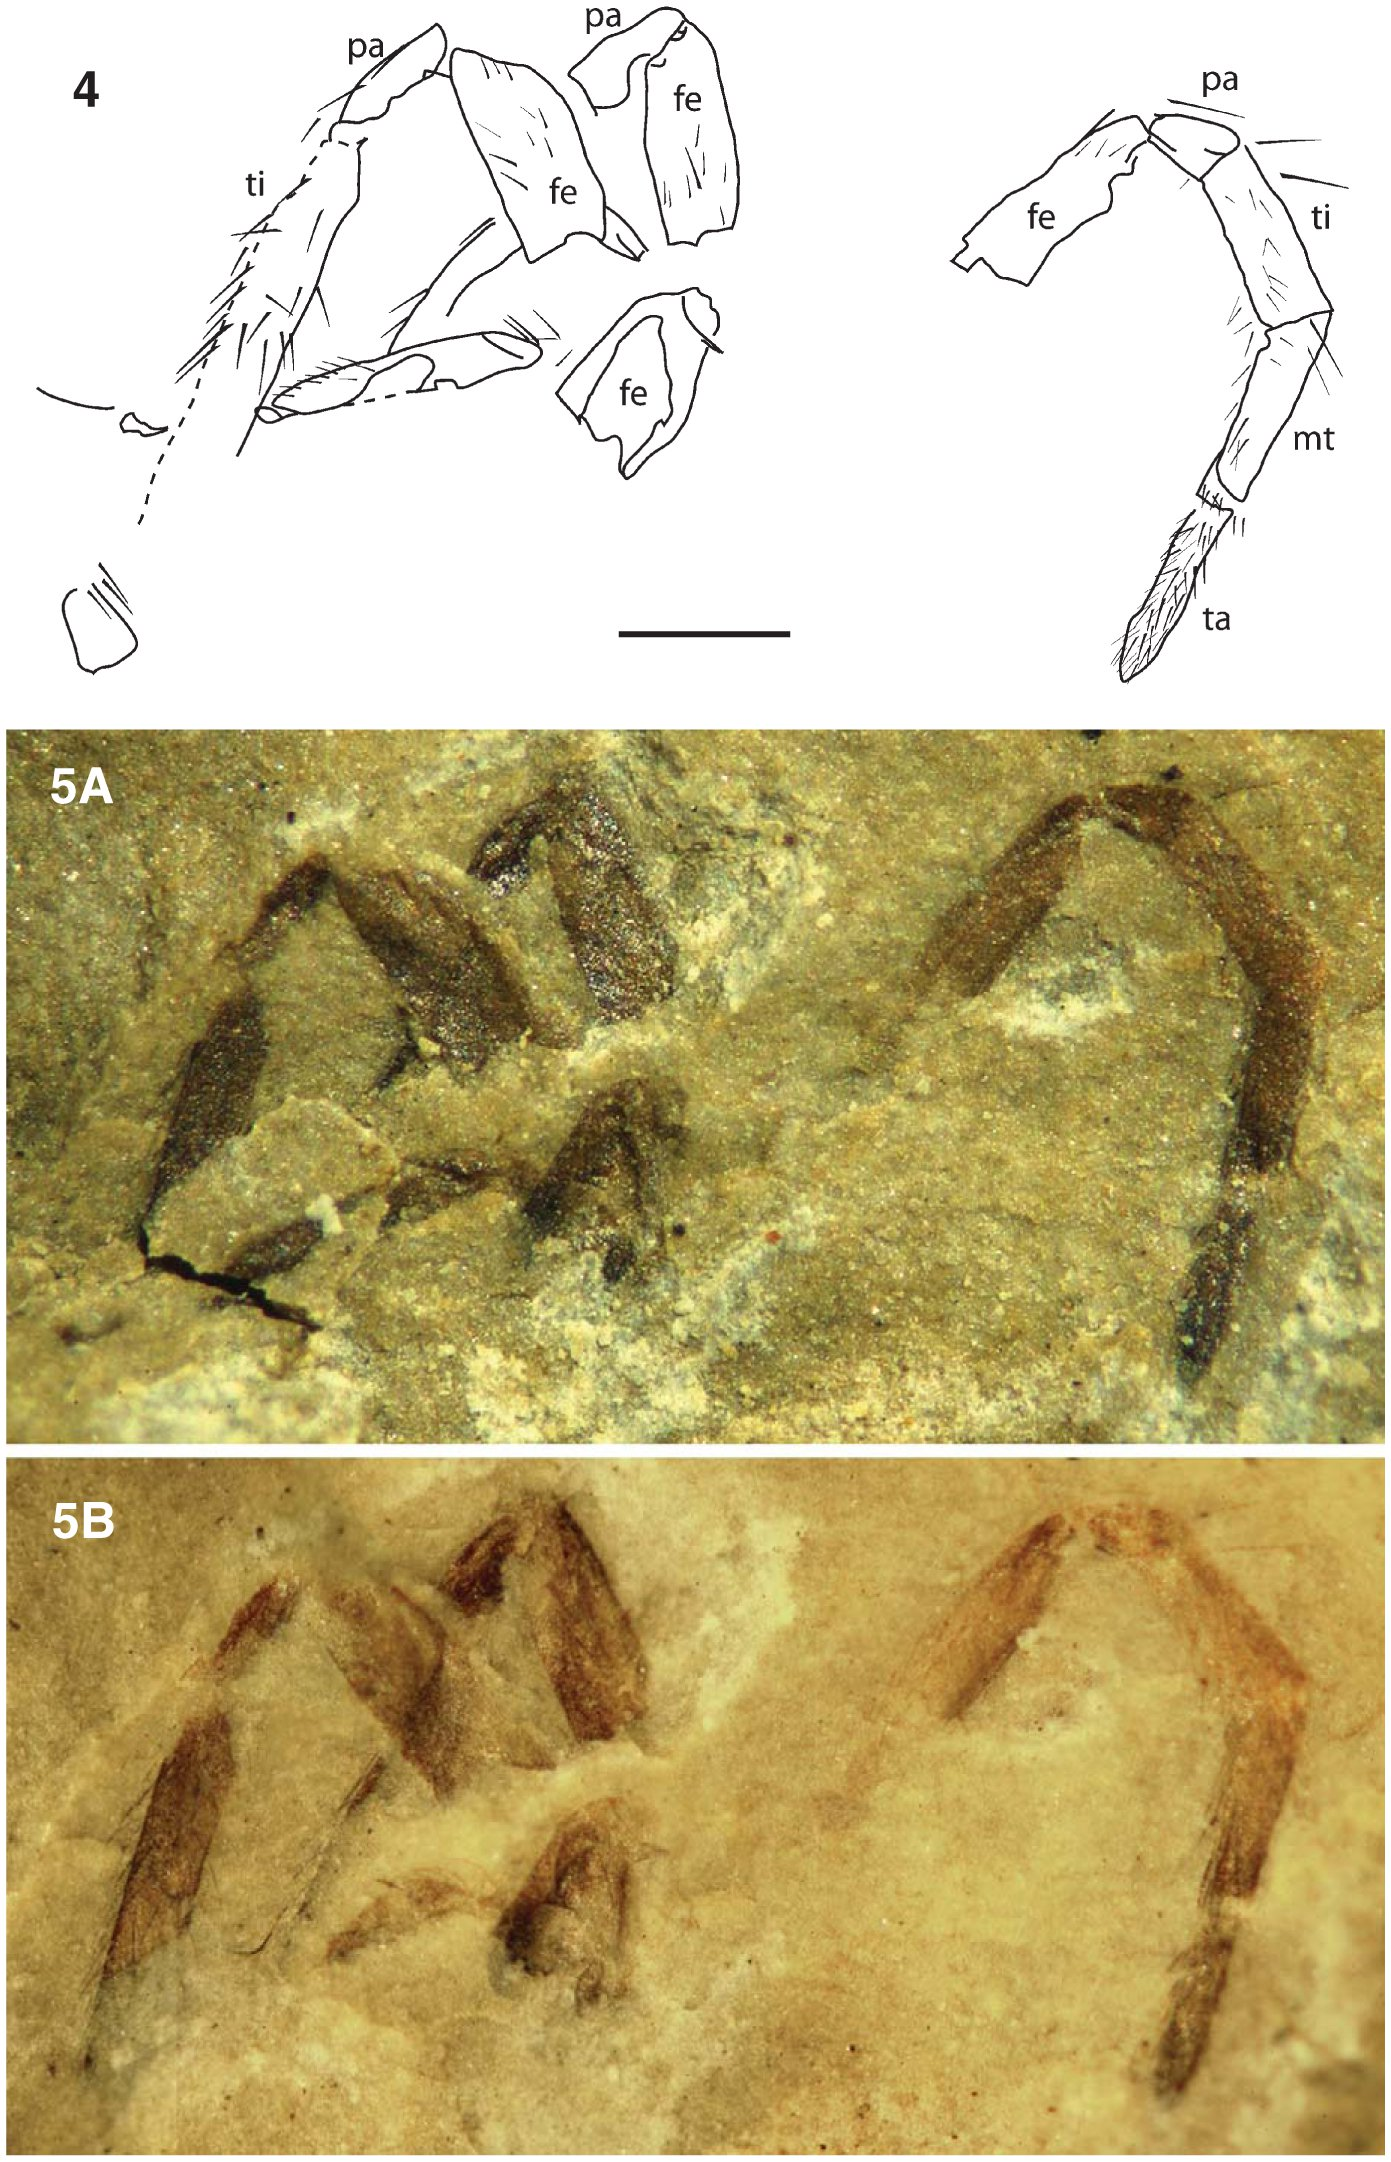 a review of the fossil record of spiders (araneae) with special